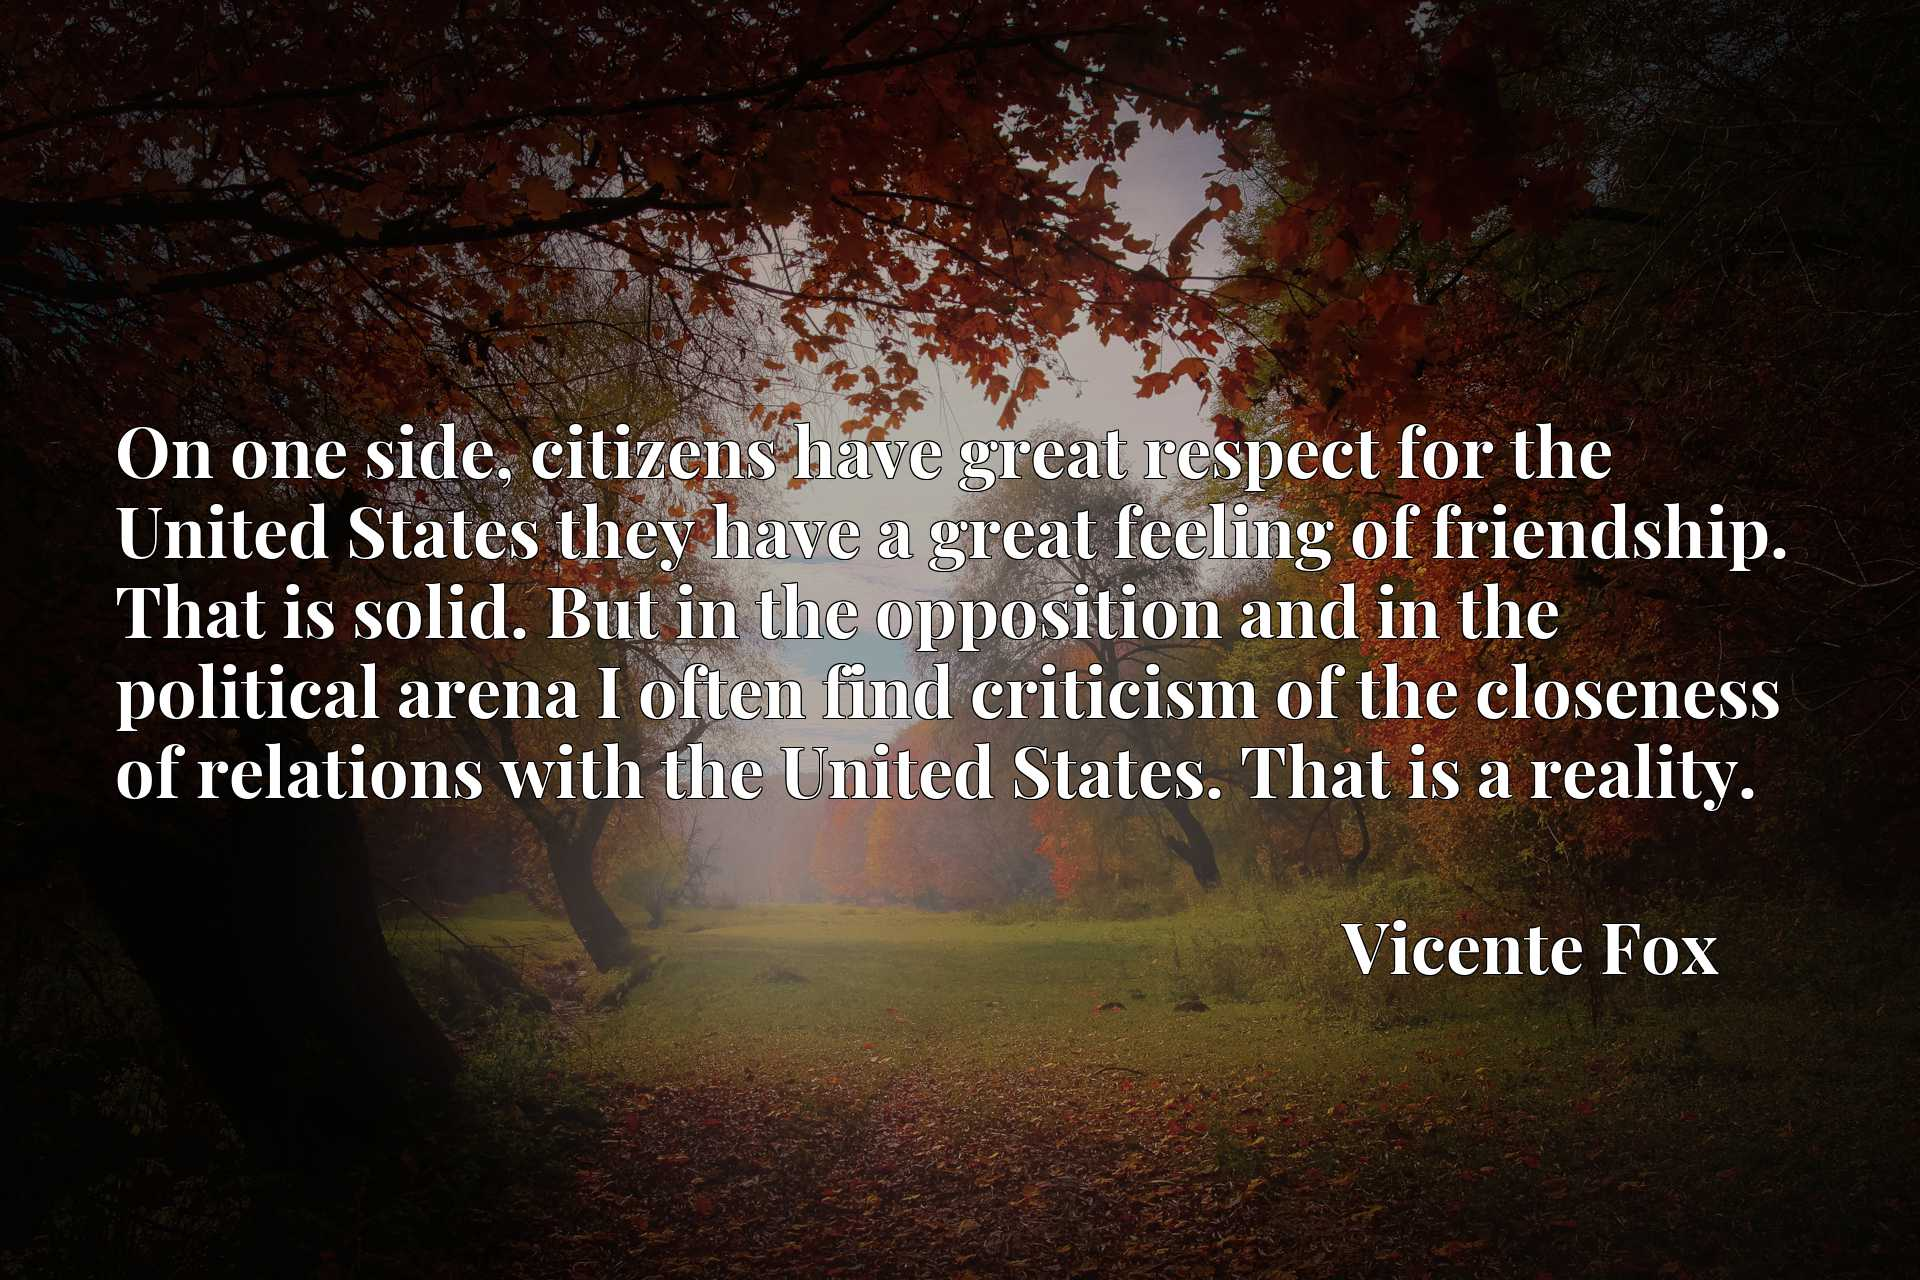 On one side, citizens have great respect for the United States they have a great feeling of friendship. That is solid. But in the opposition and in the political arena I often find criticism of the closeness of relations with the United States. That is a reality.